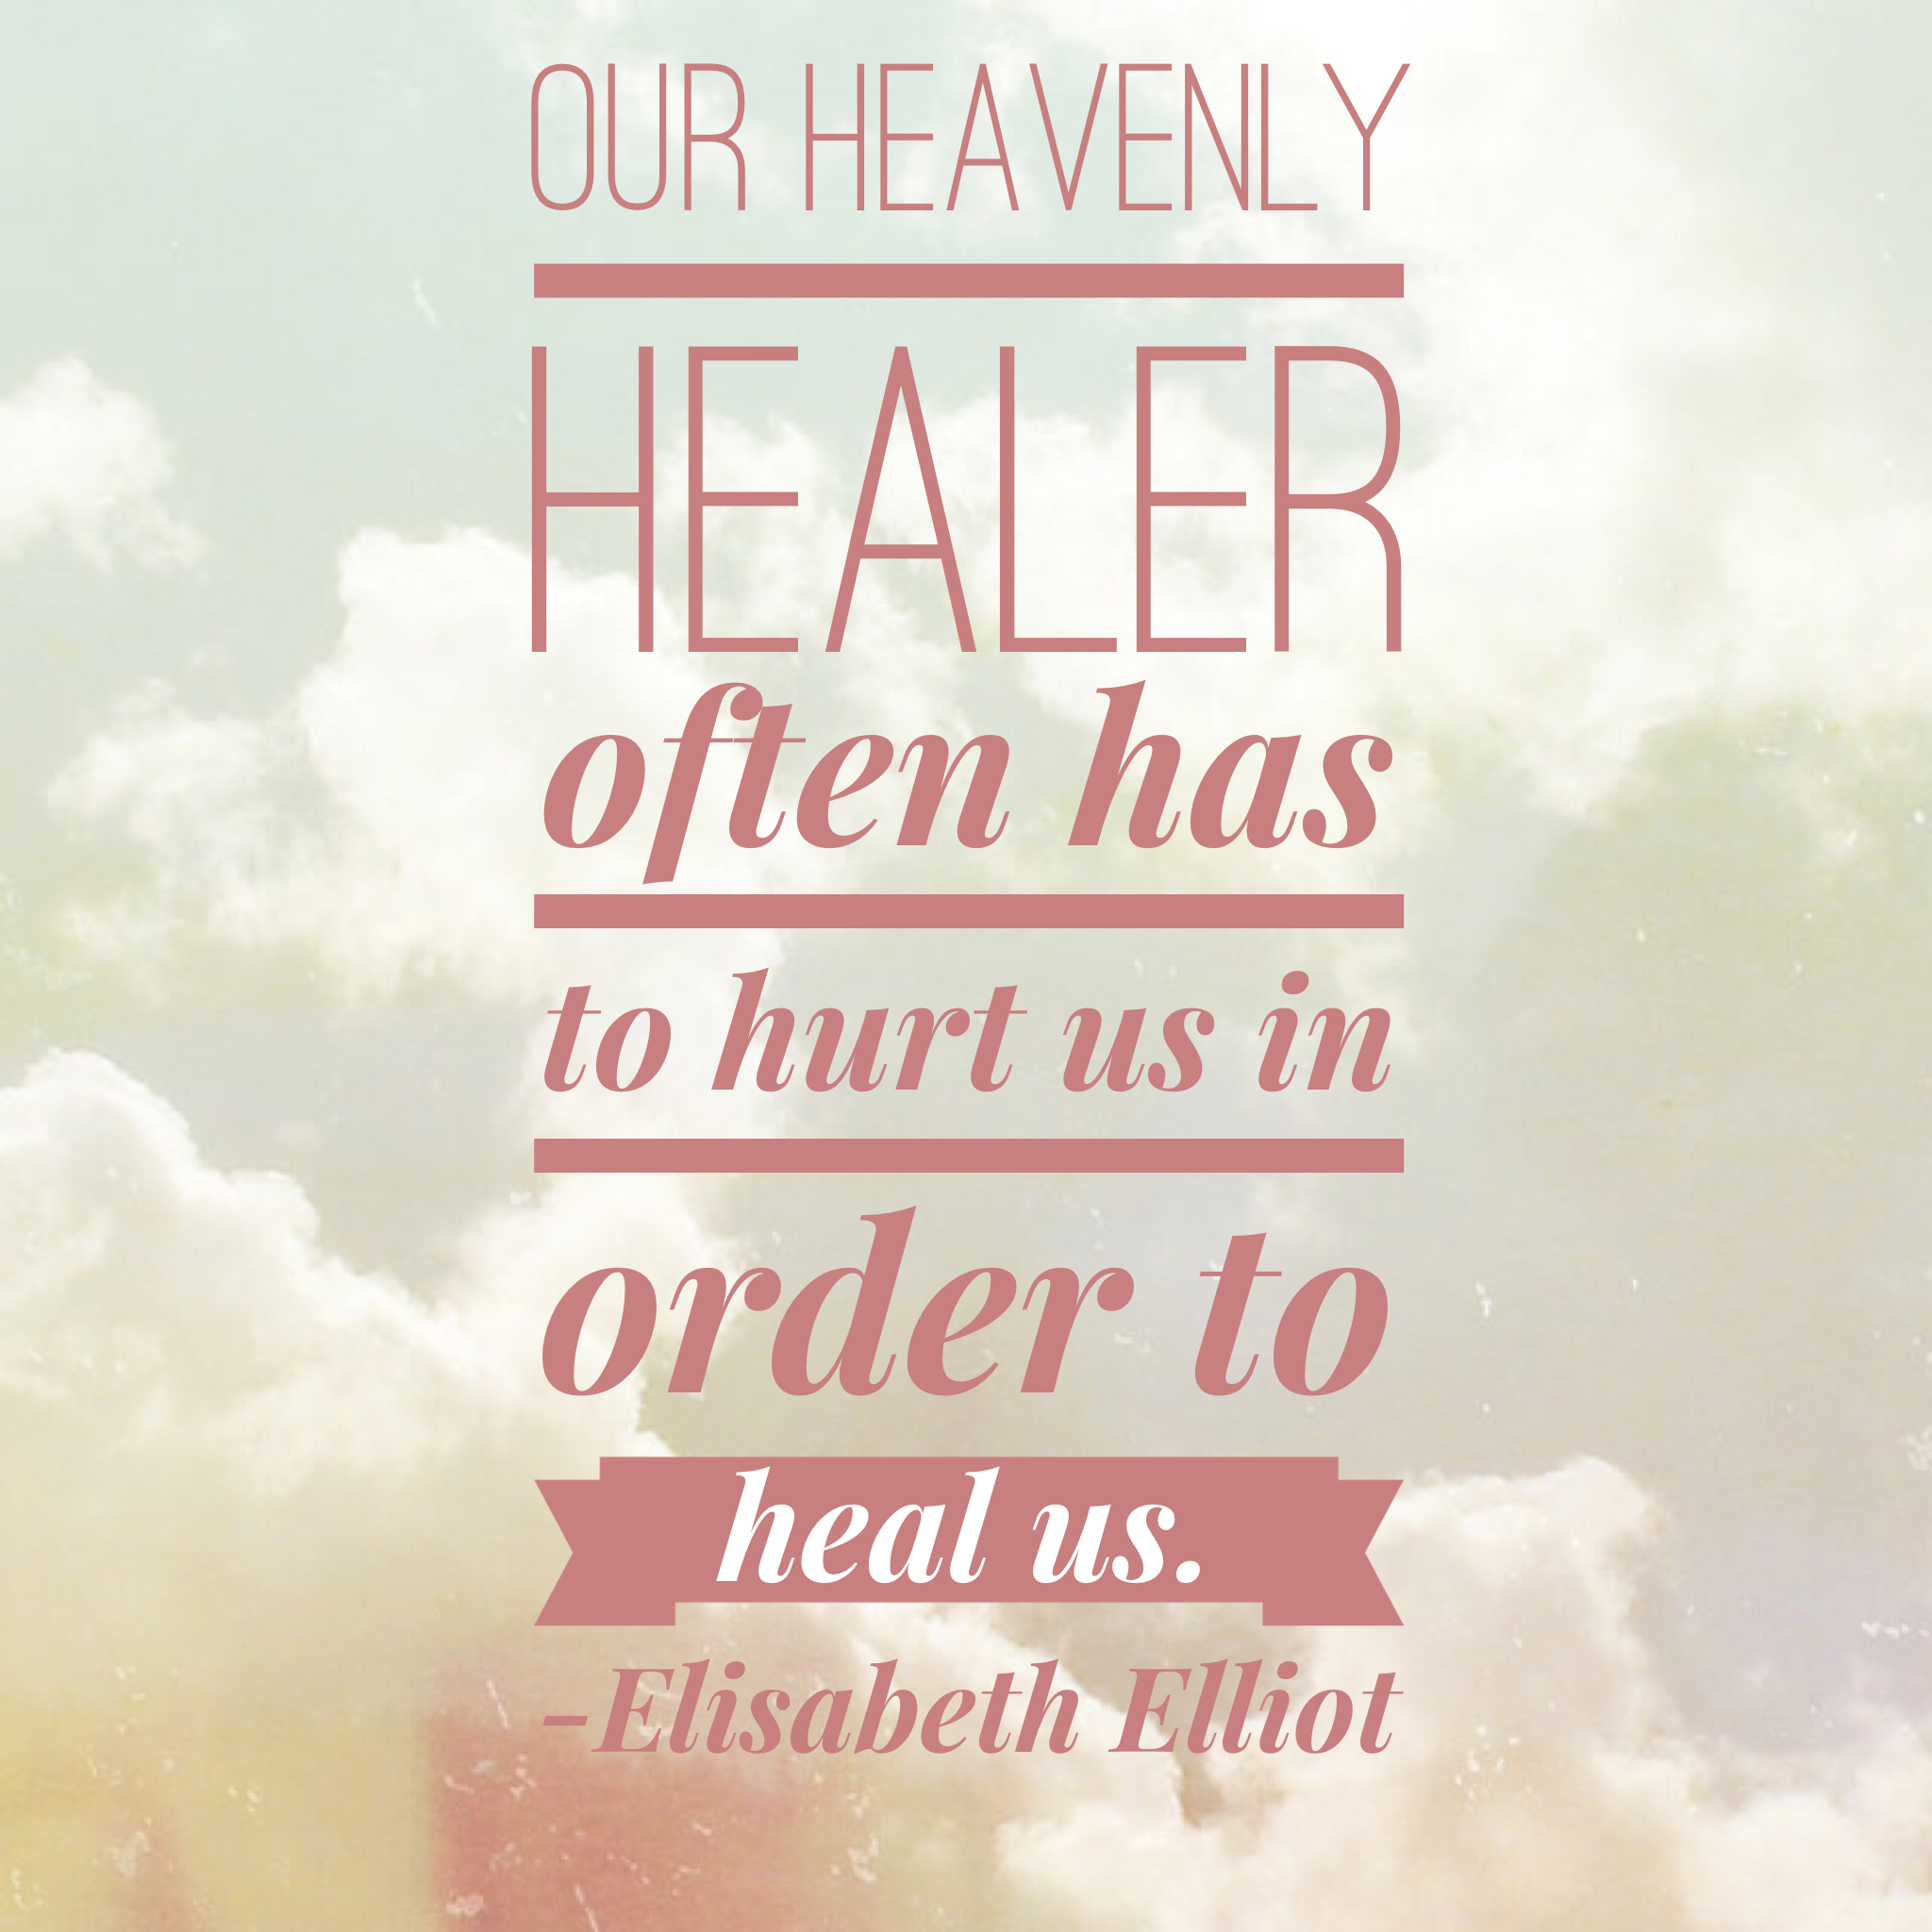 Elisabeth Elliot Quotes On Love: 31 Days With Elisabeth Elliot: The Hand That Hurts And The